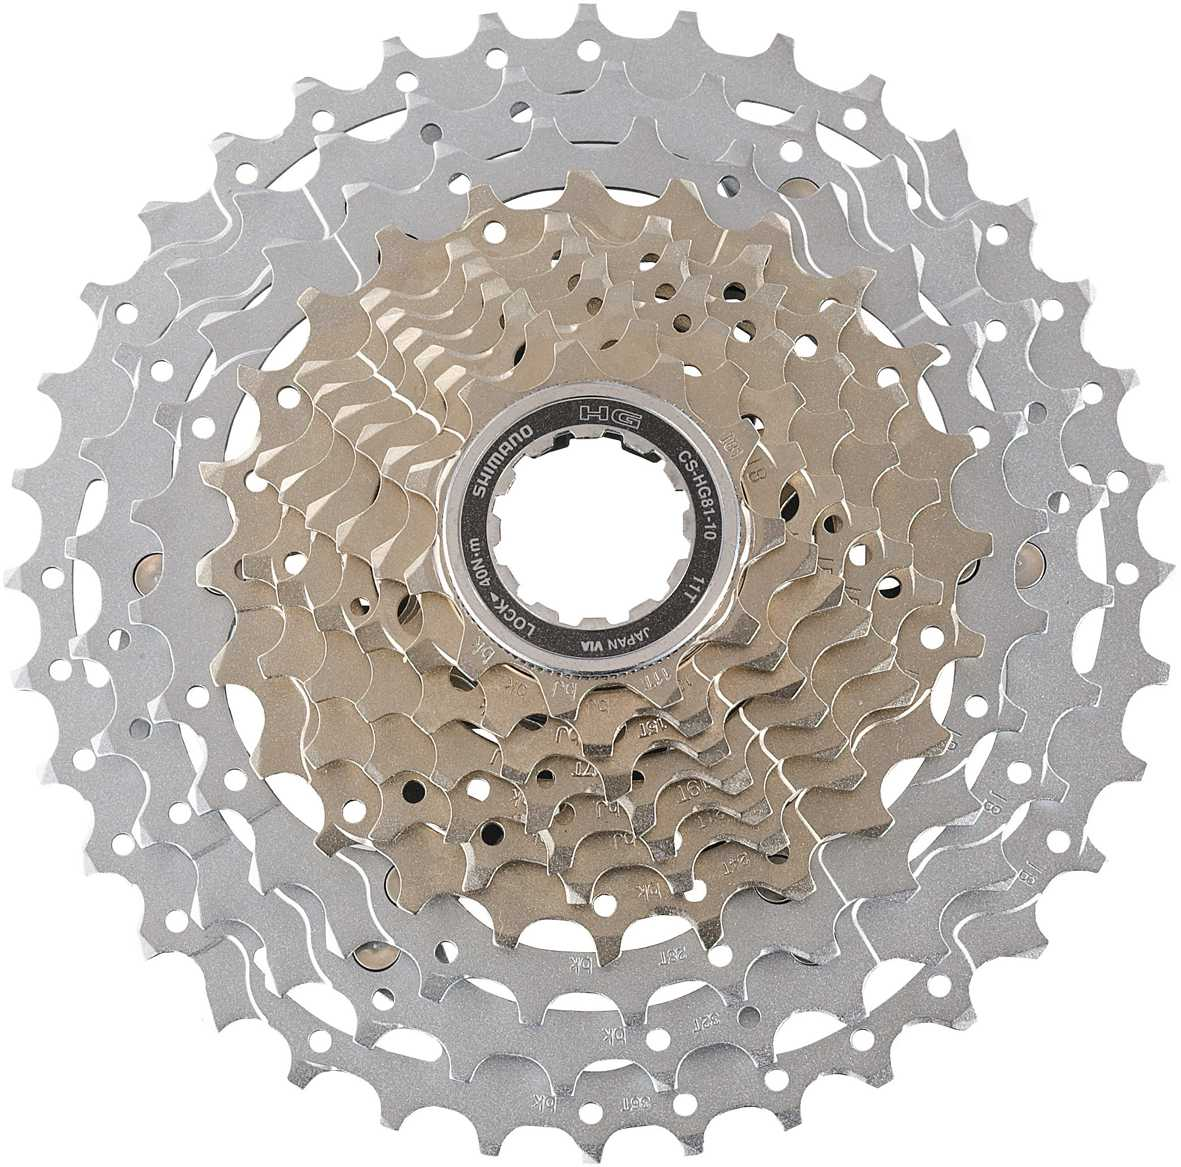 Shimano SLX HG81 10 Speed 11-36 Tooth Cassette